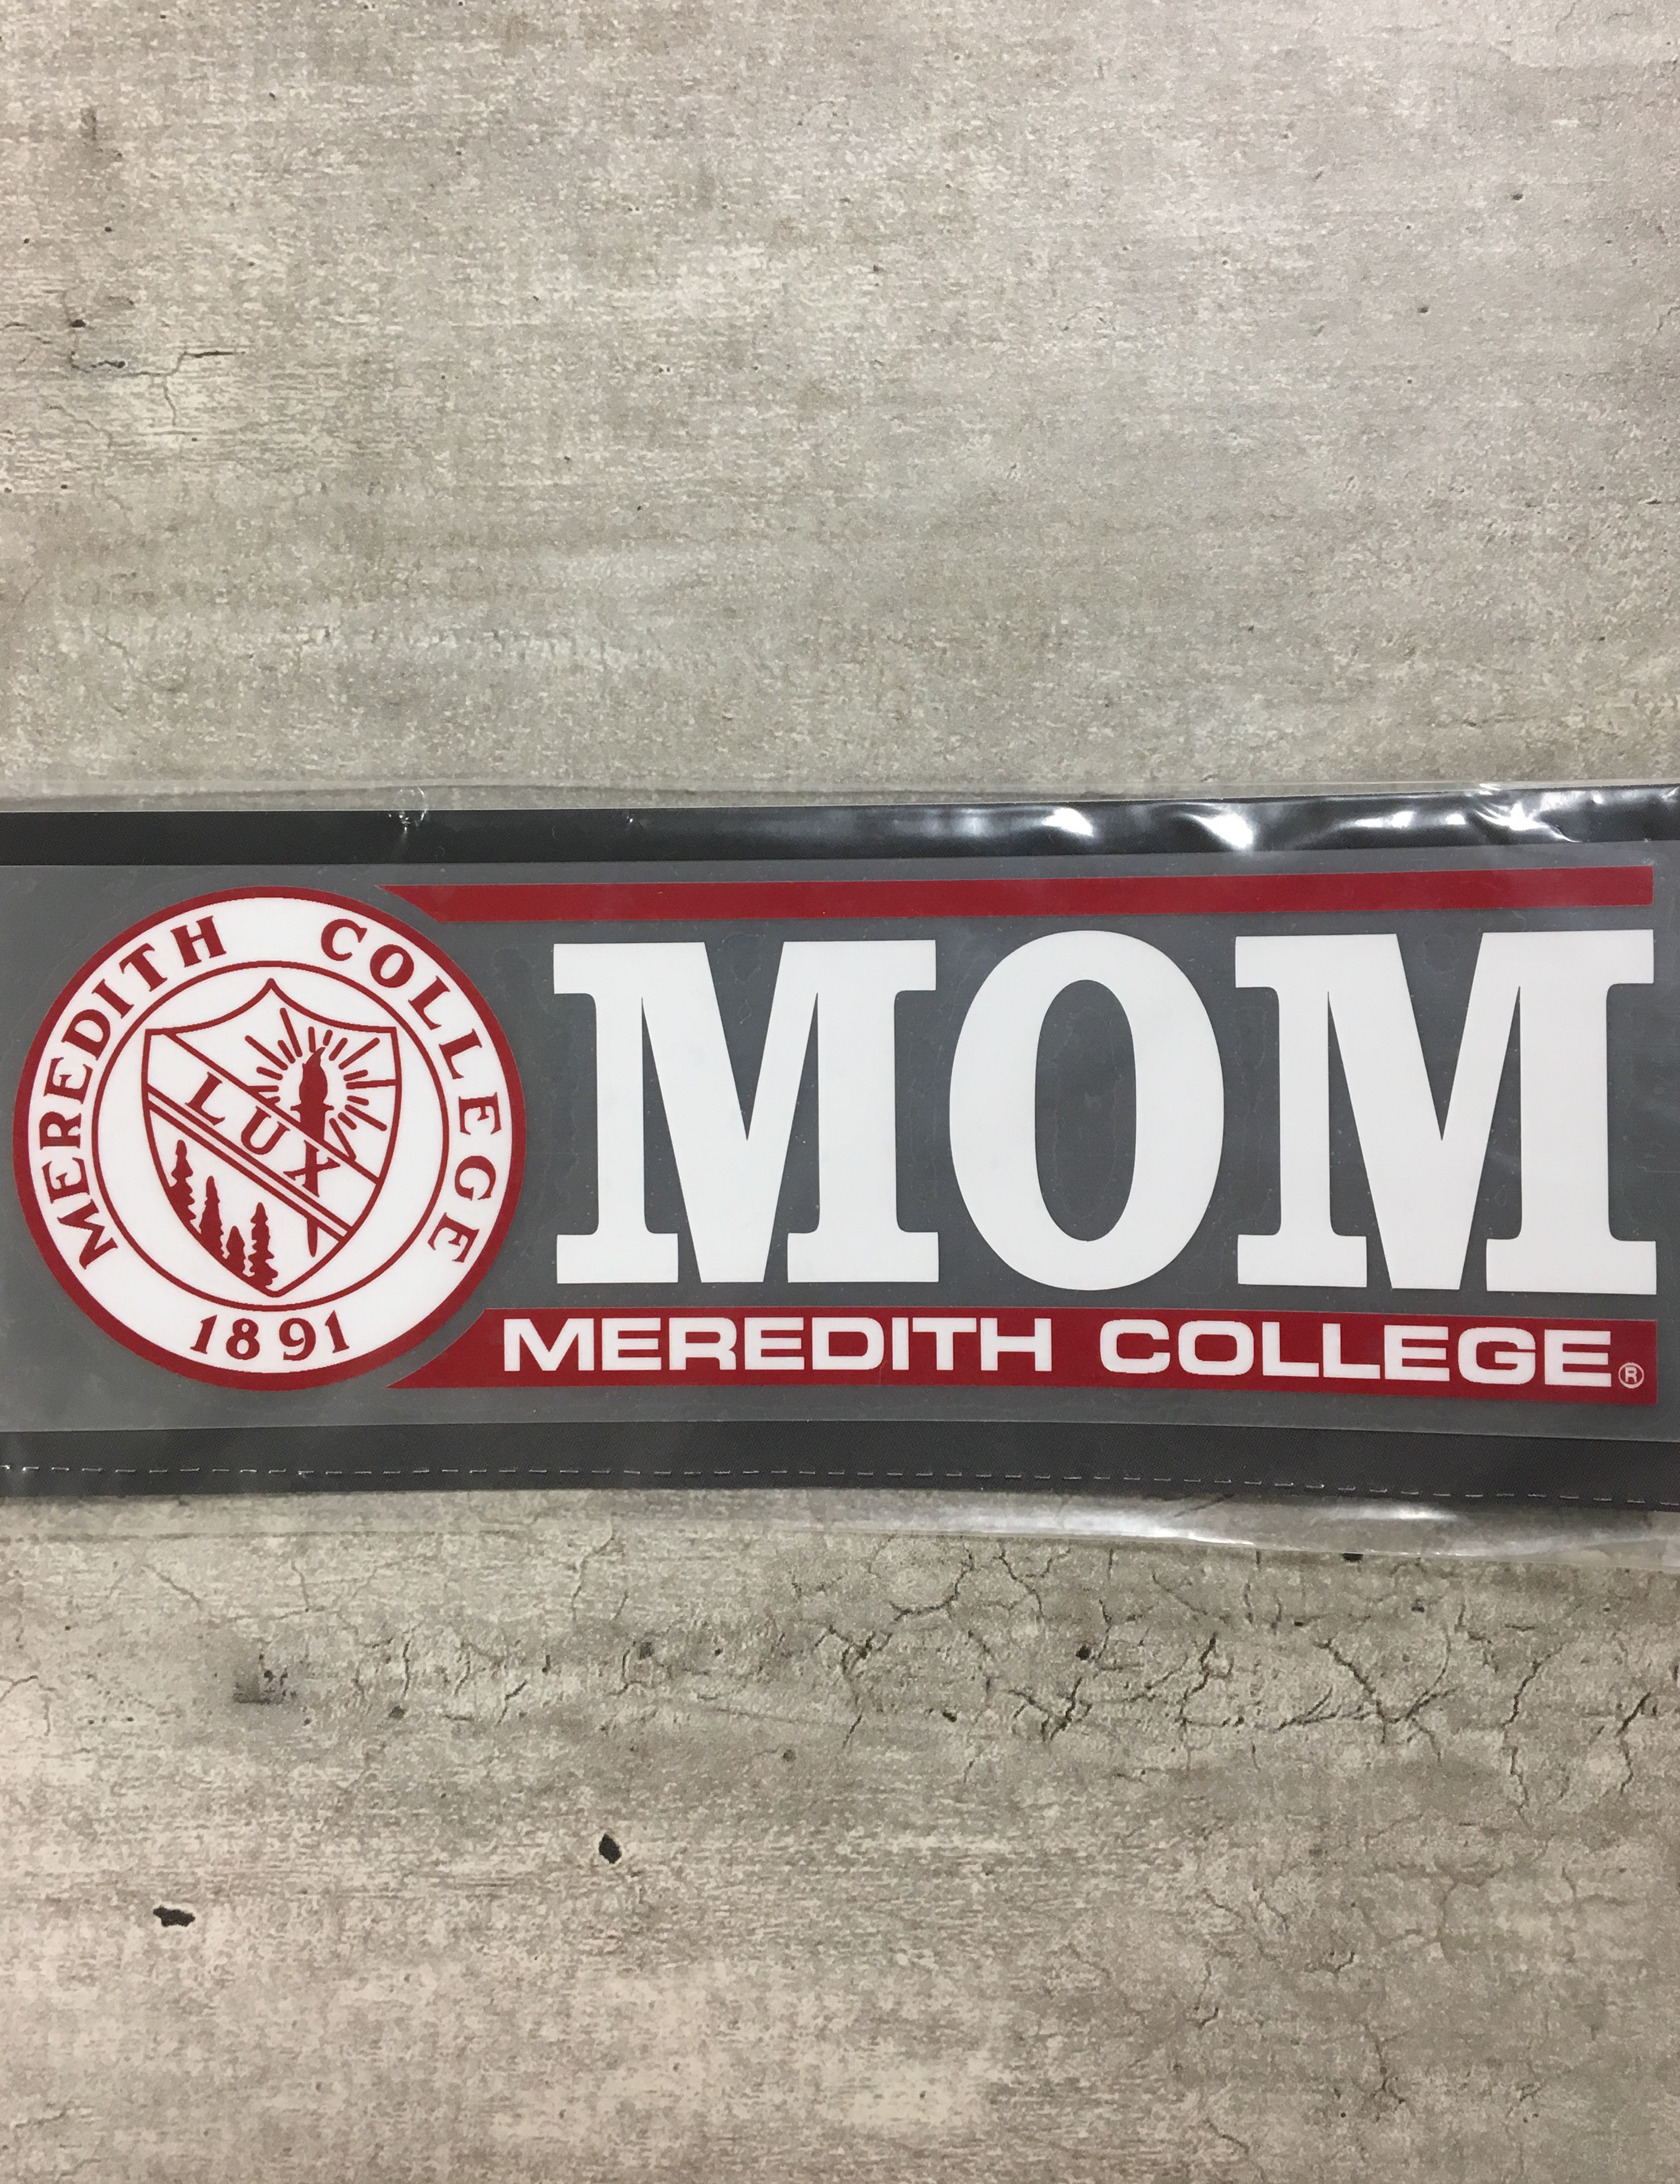 Image for the Decal, Family Seal product